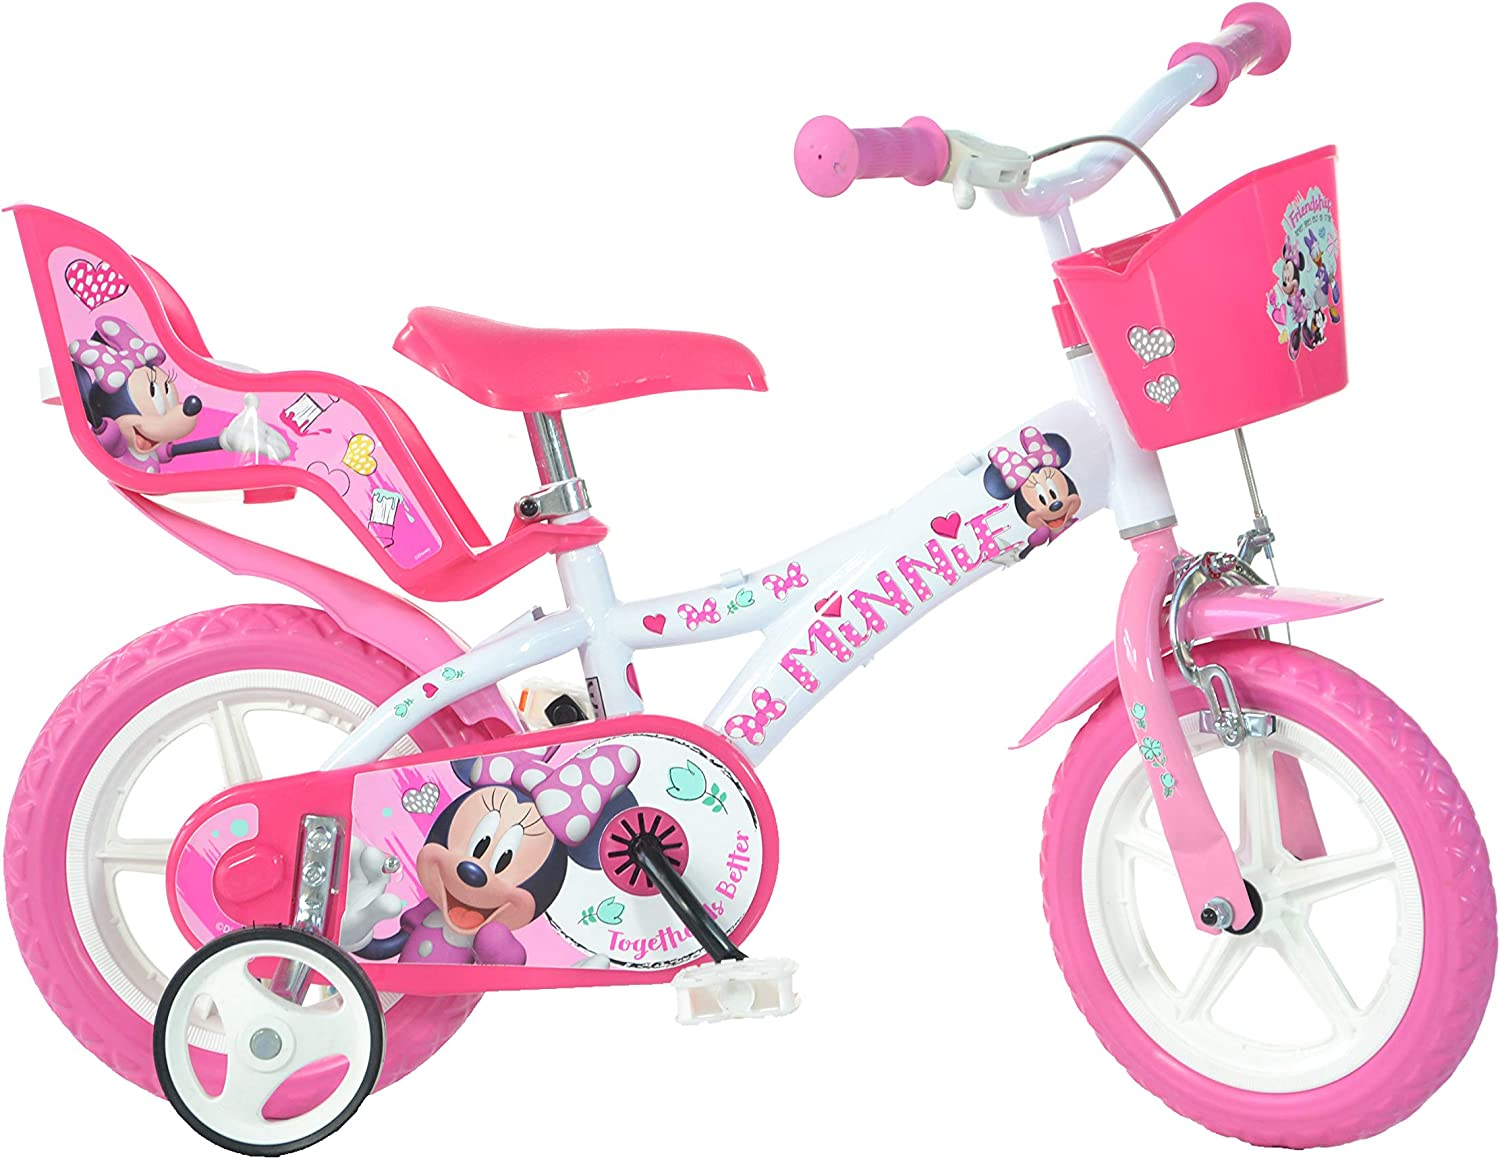 Dino Bikes Minnie Mouse Licensed 12 Inch Bicycle: Amazon.es ...